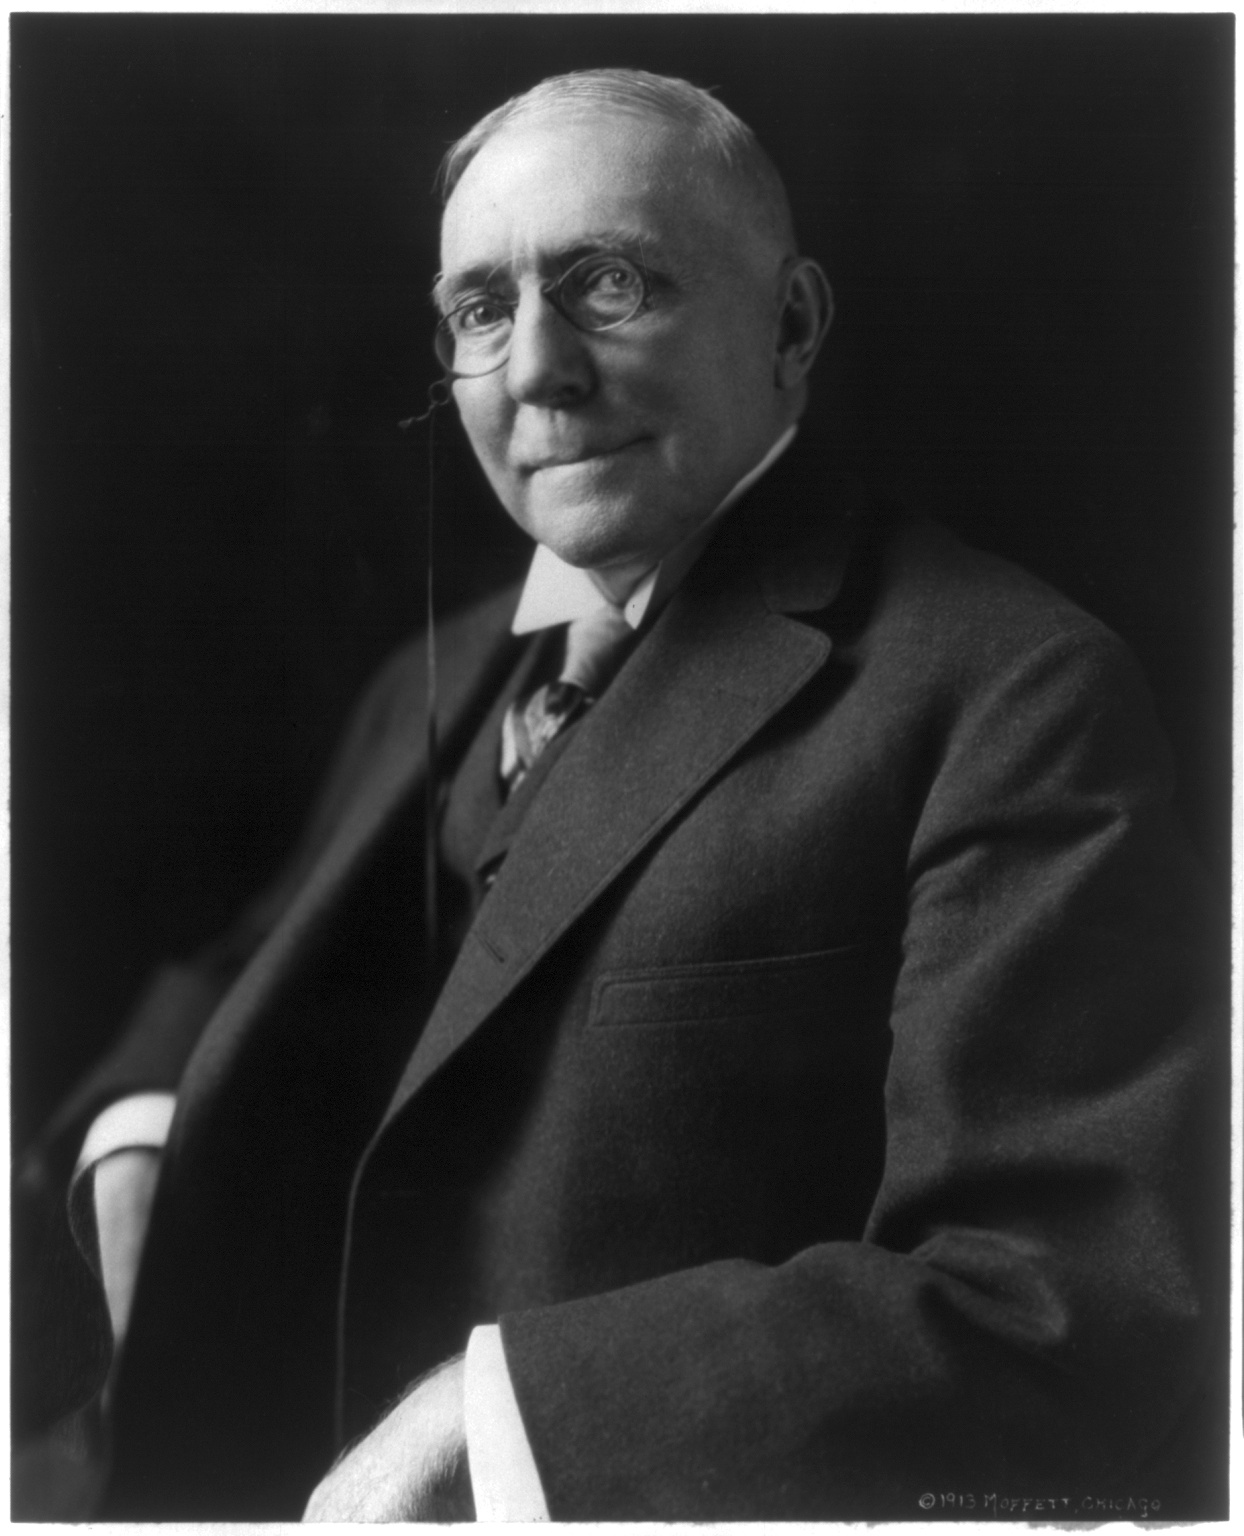 James Whitcomb Riley in 1913